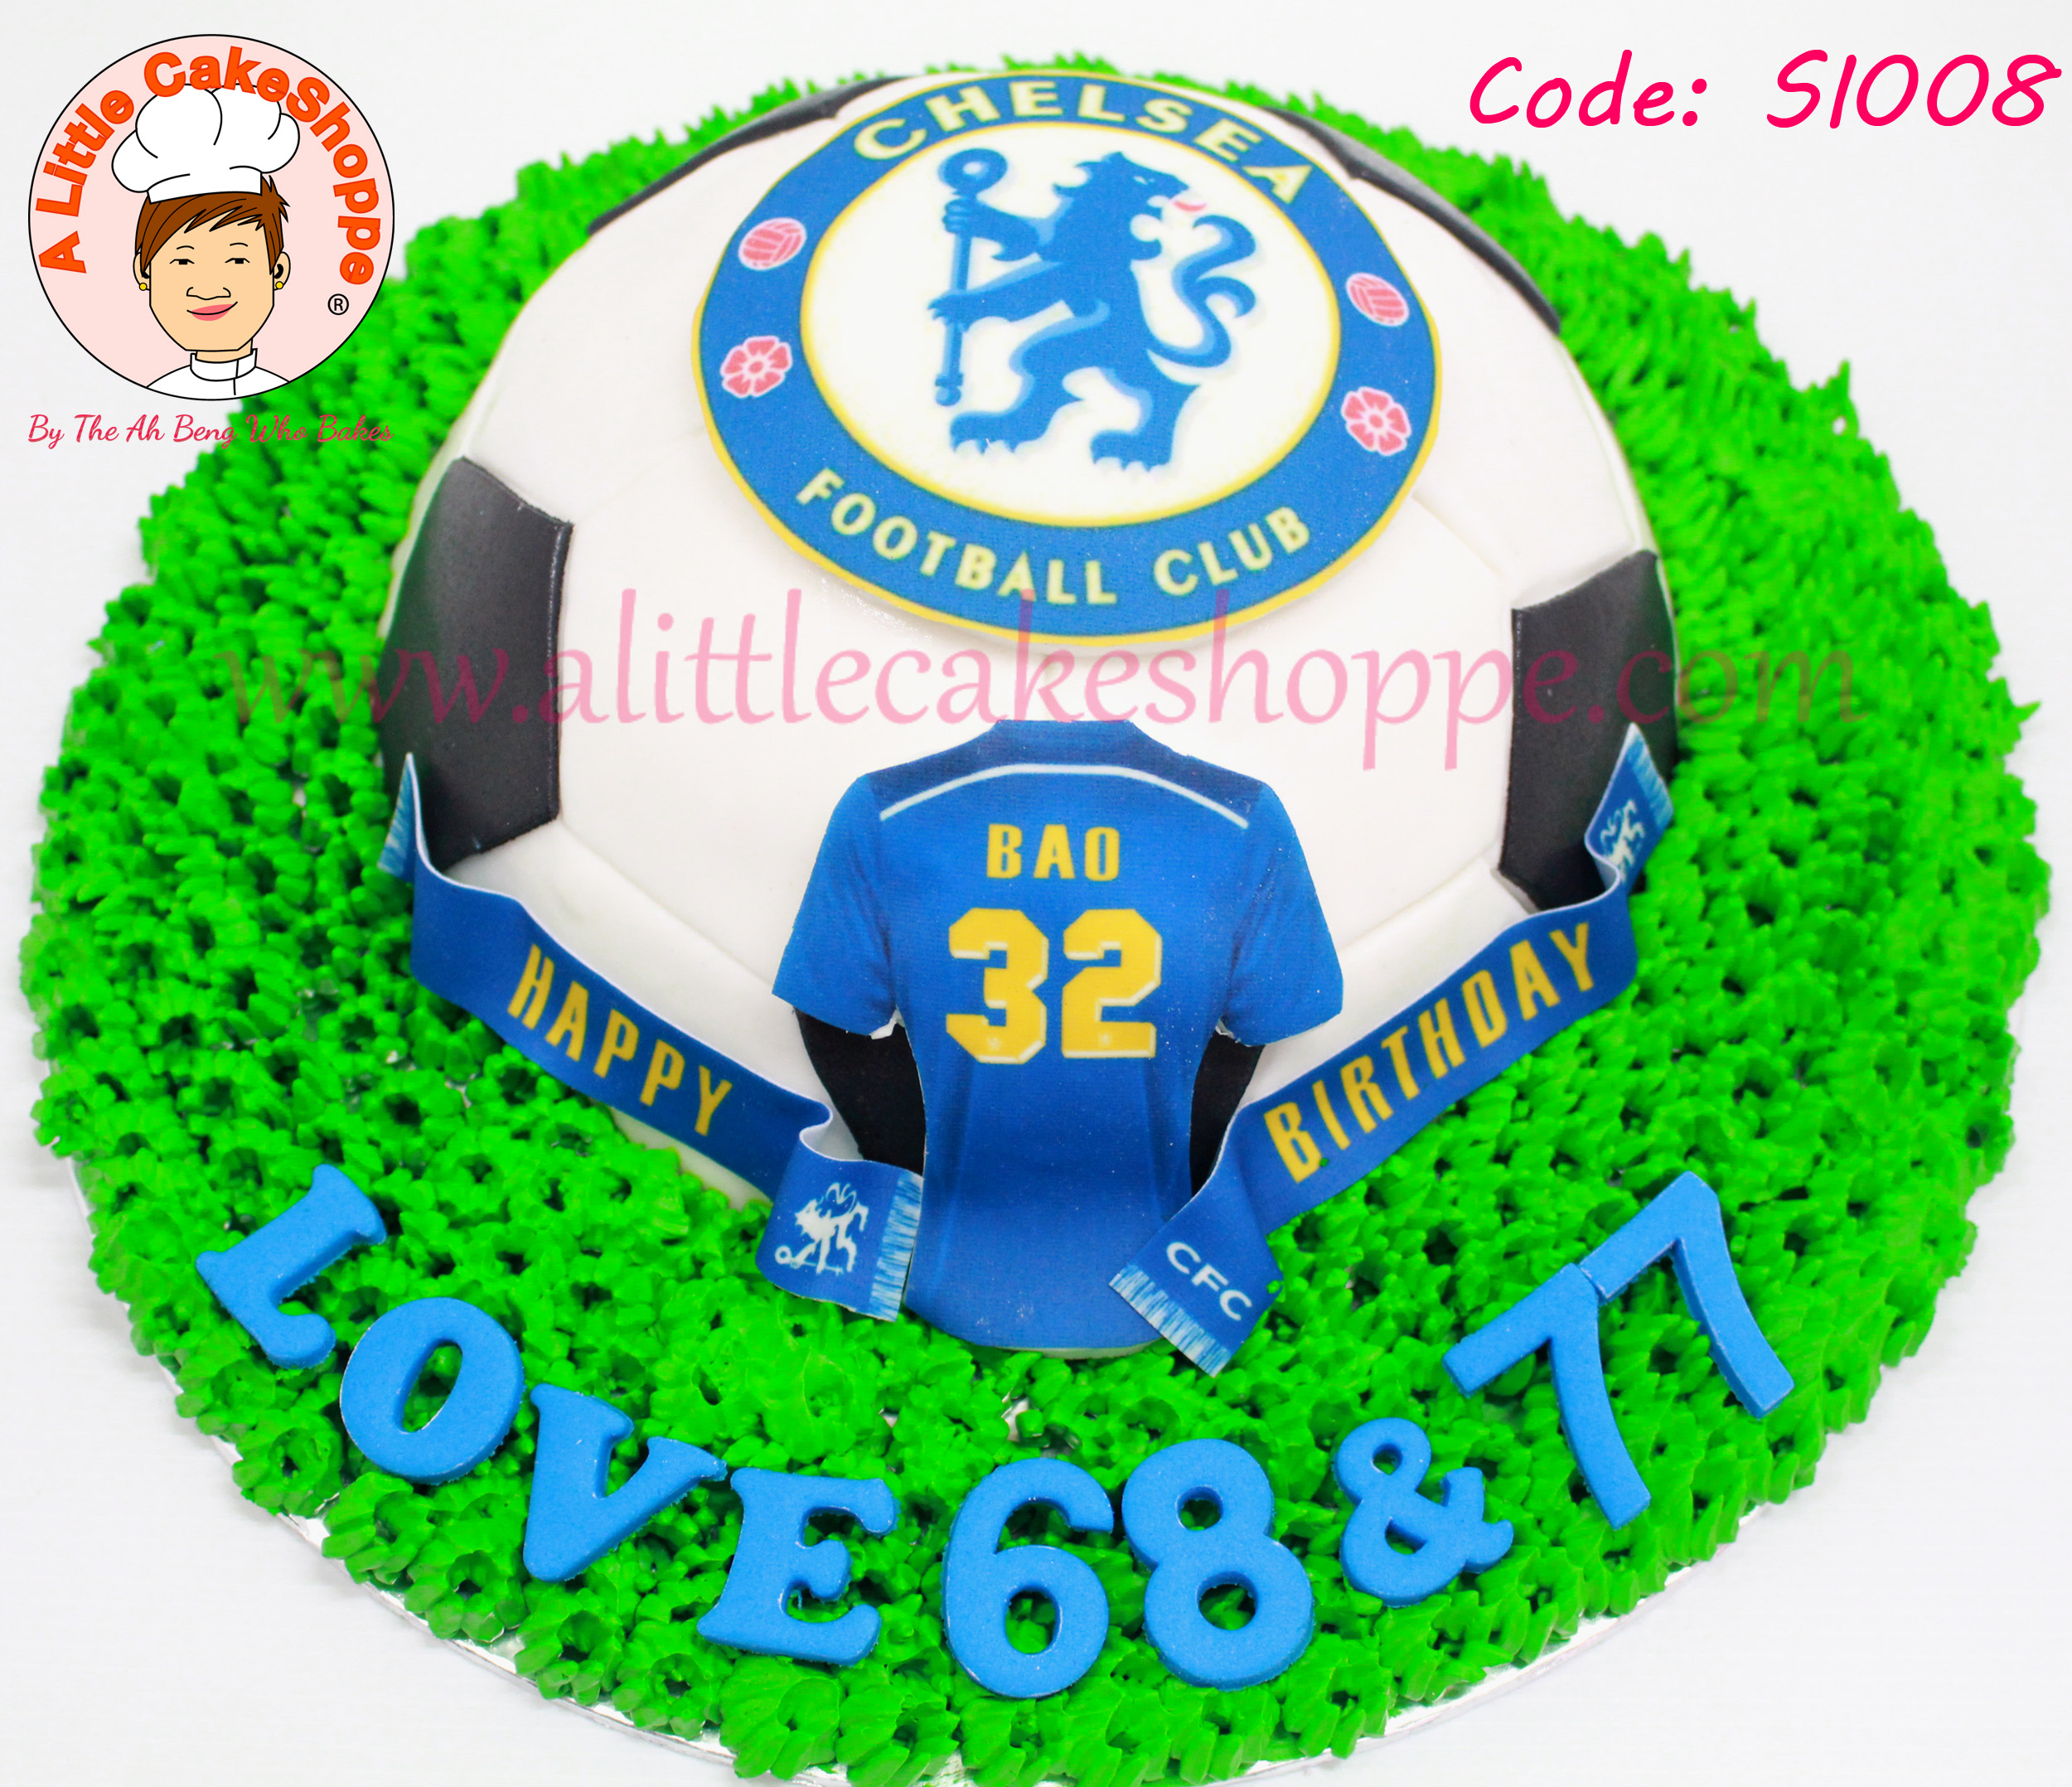 Best Customised Cake Singapore custom cake 2D 3D birthday cake cupcakes desserts wedding corporate events anniversary 1st birthday 21st birthday fondant fresh cream buttercream cakes alittlecakeshoppe a little cake shoppe compliments review singapore bakers SG cakeshop ah beng who bakes sports soccer football man u manchester united liverpool